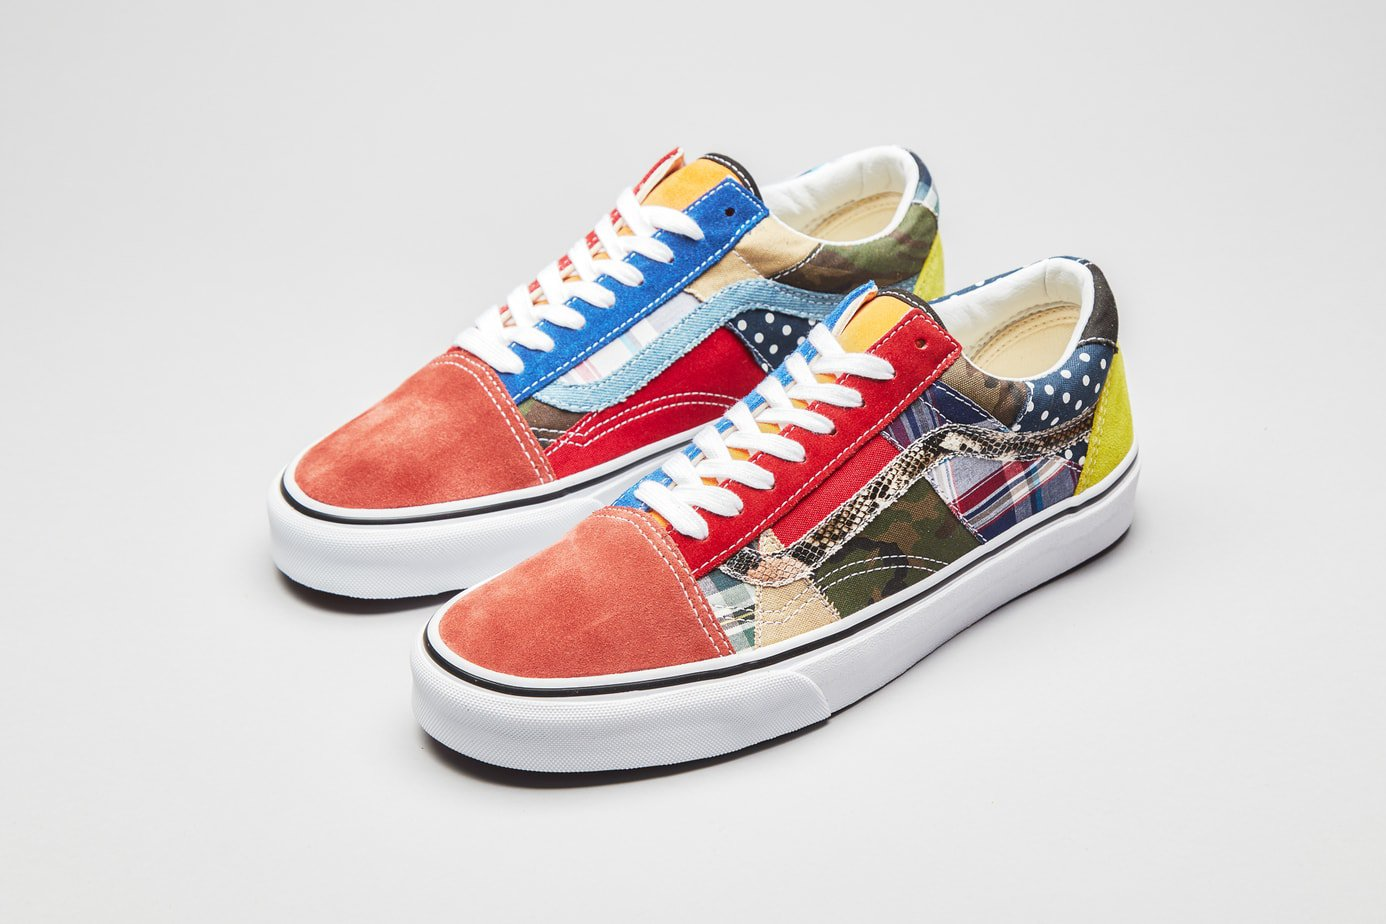 68bee62dd9 Buy 2 OFF ANY vans shoes official site CASE AND GET 70% OFF!